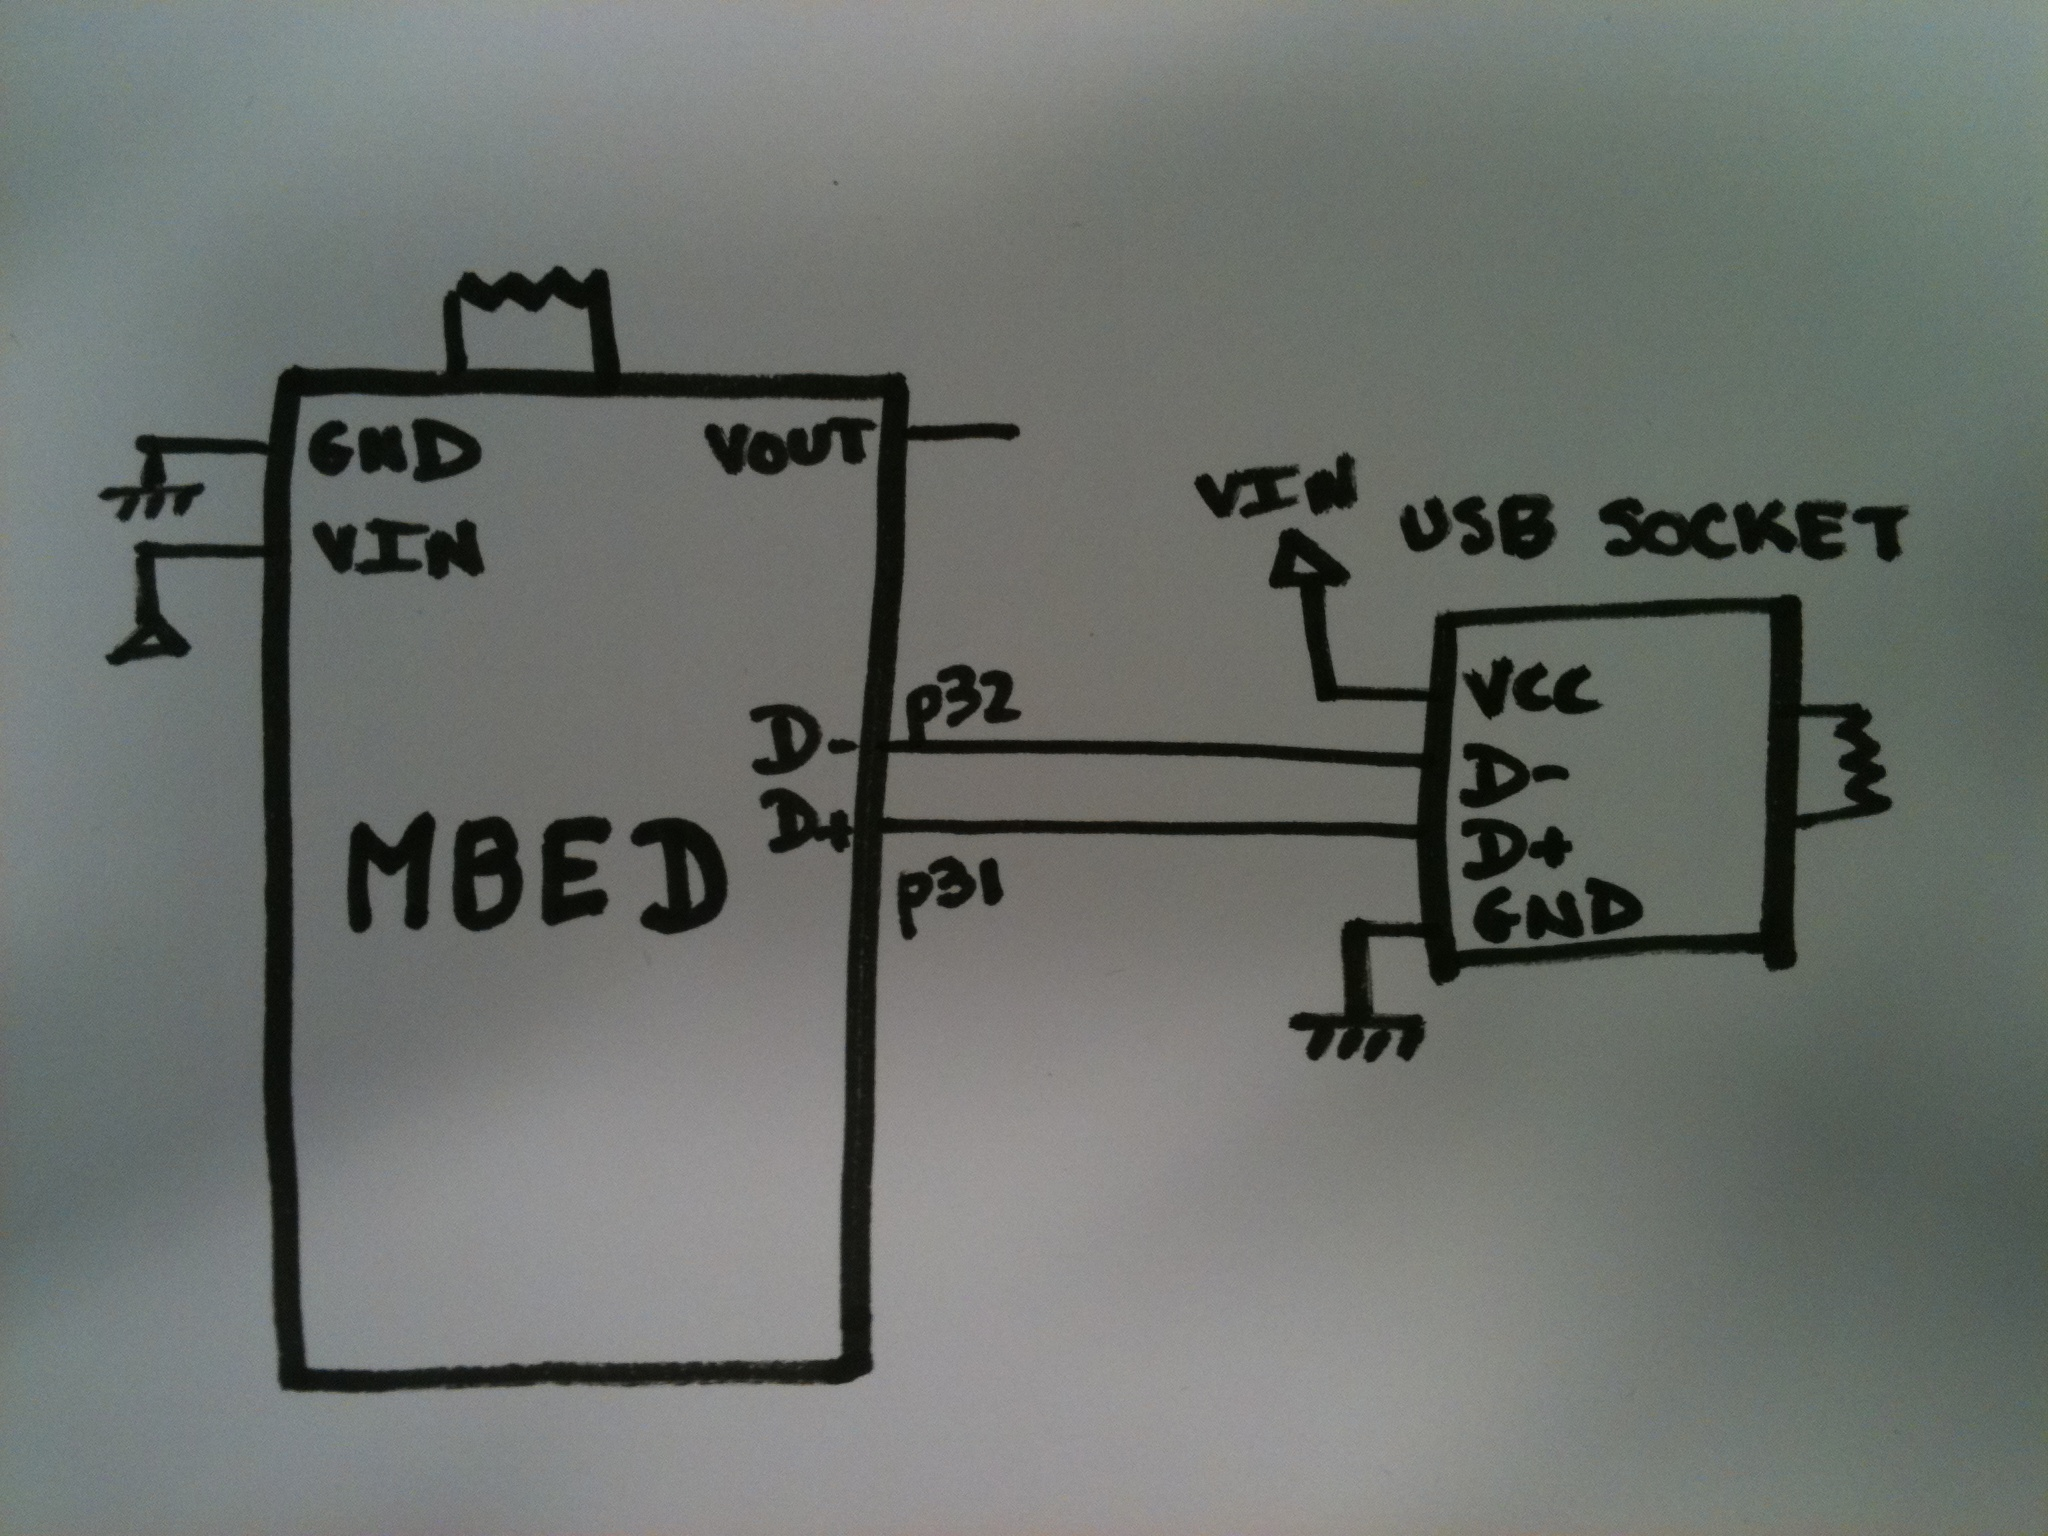 Usbdevice Handbook Mbed Rs232 Mouse Wiring Diagram Usb